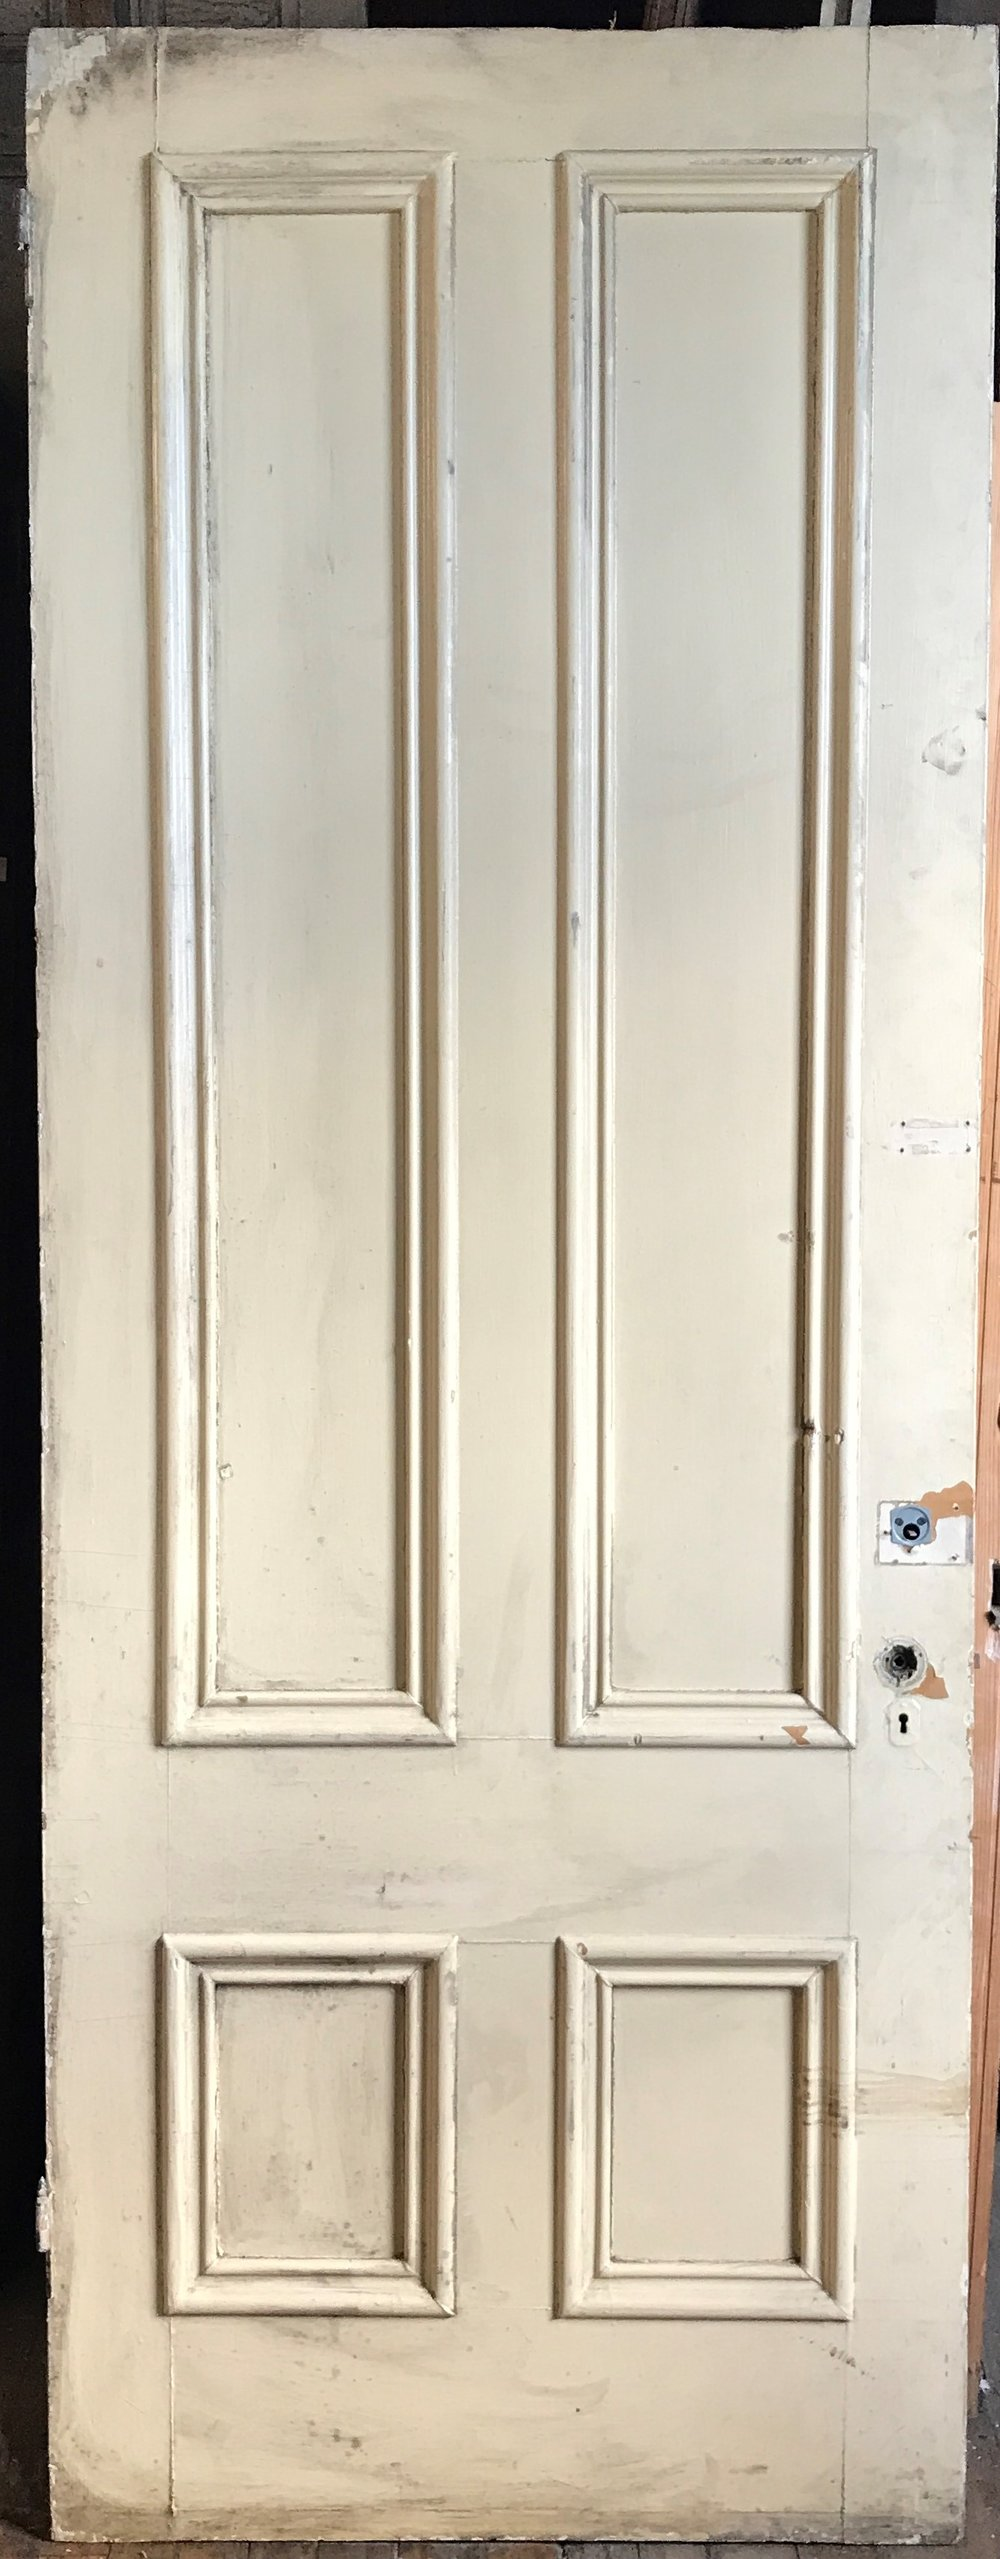 Oversized 4 Panel Interior Door